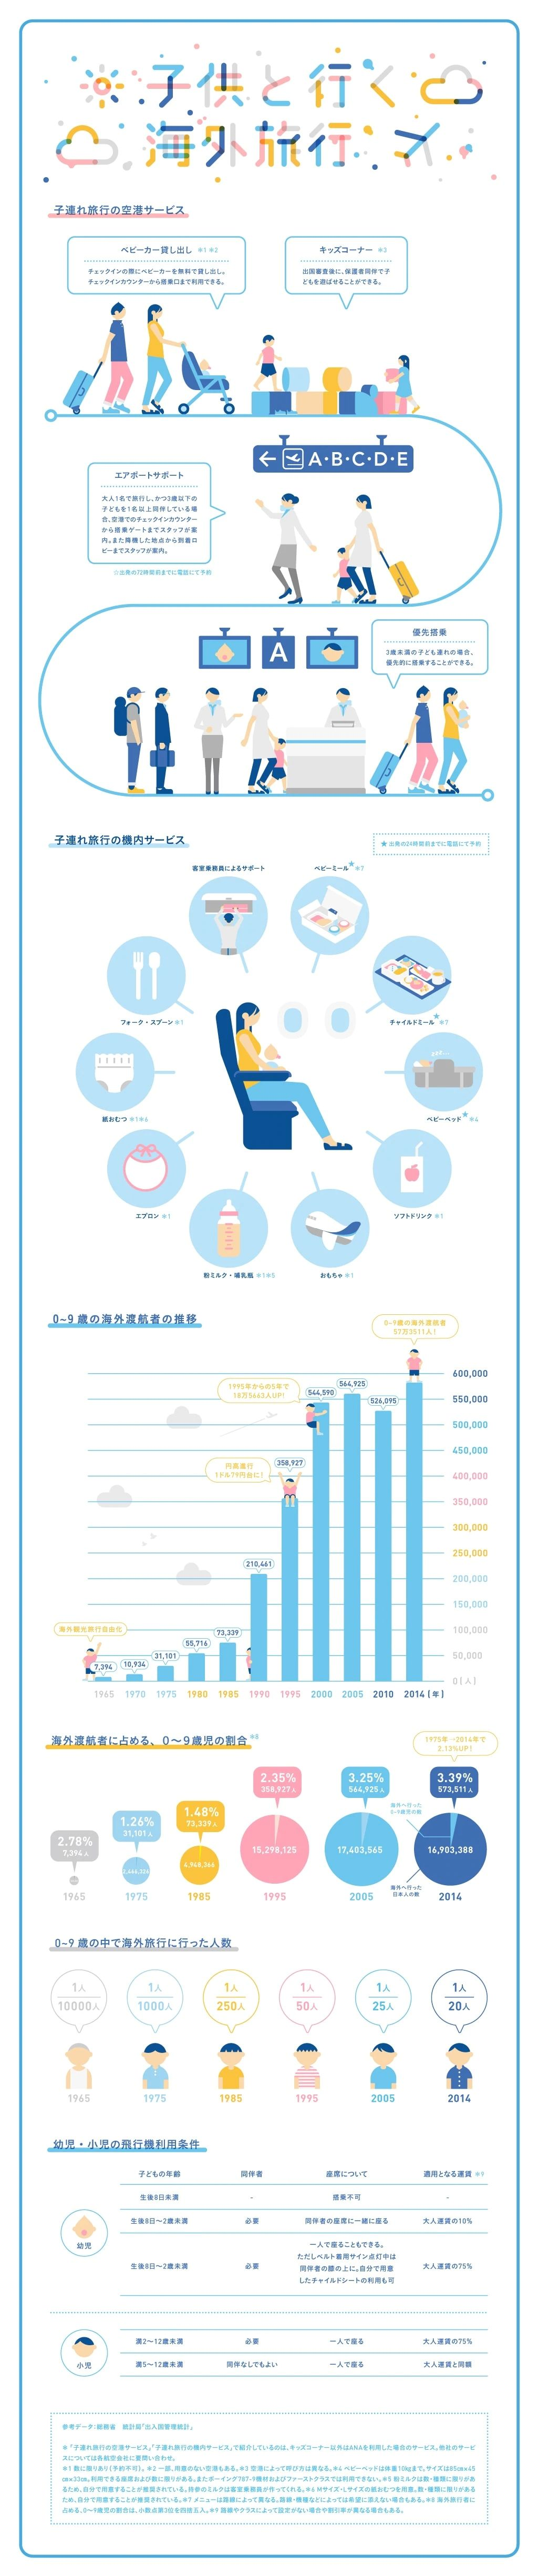 Pin by sam on 信息图 Infographic layout, Infographic design